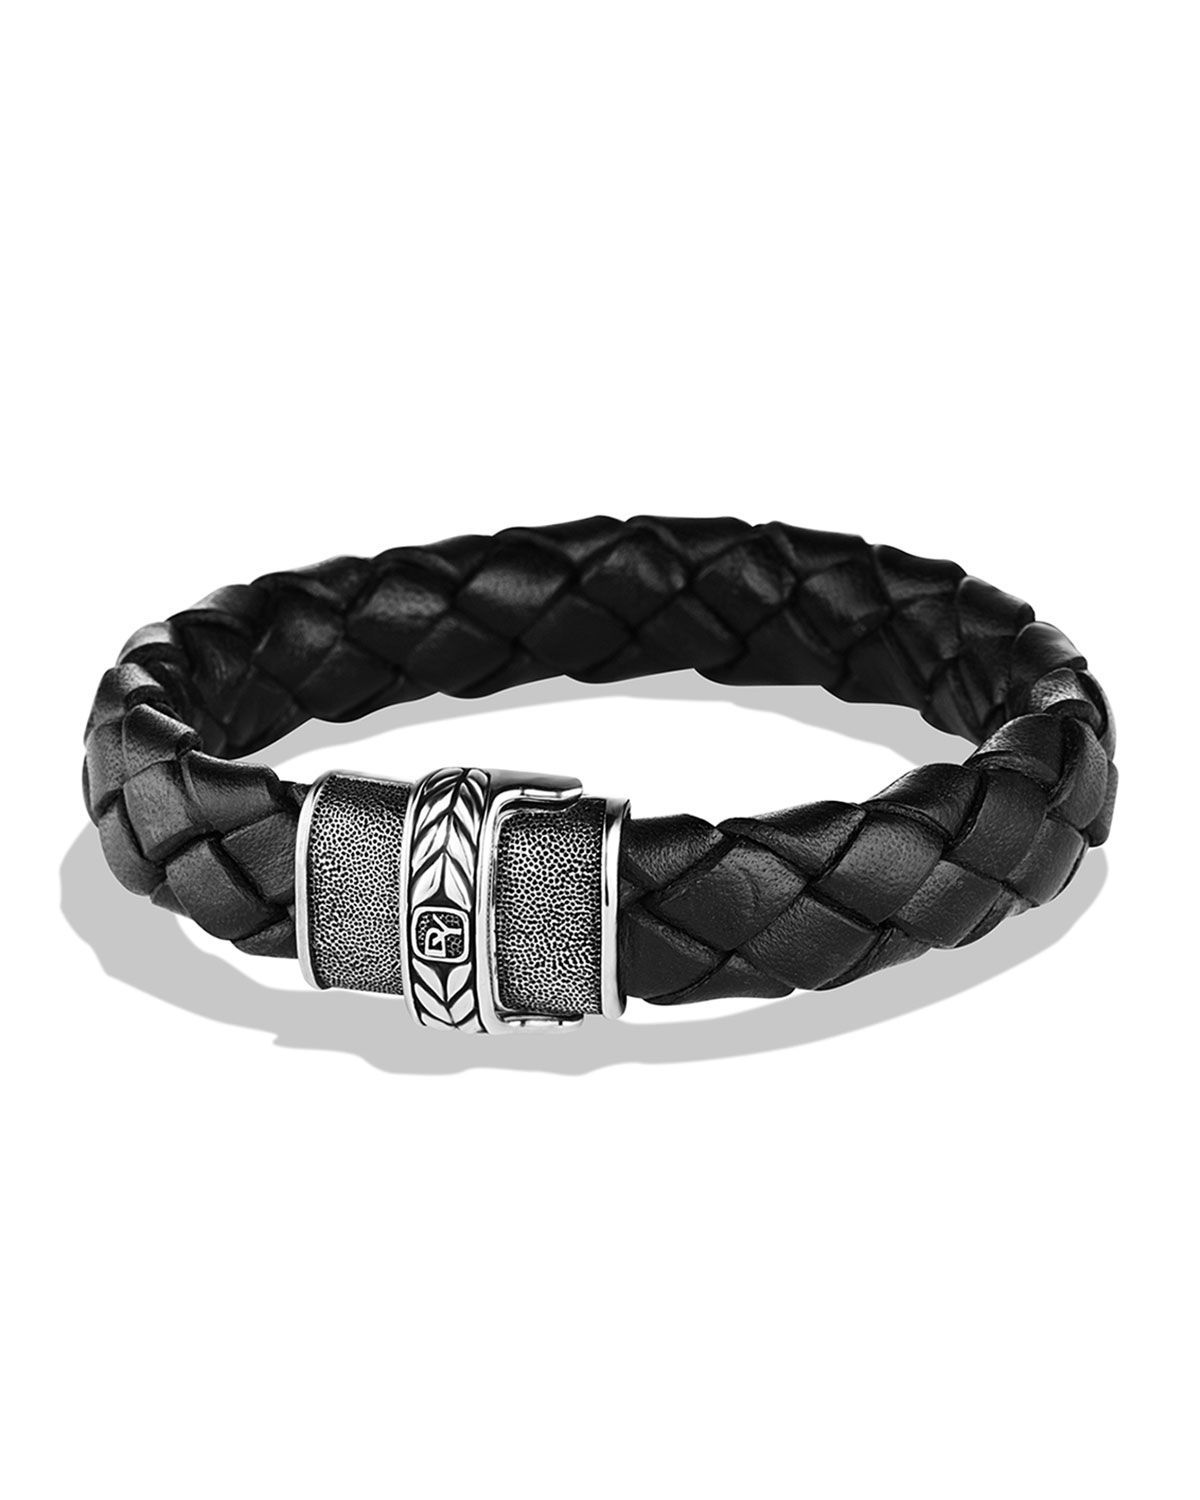 david yurman black lthr chevron bracelet for the guys. Black Bedroom Furniture Sets. Home Design Ideas